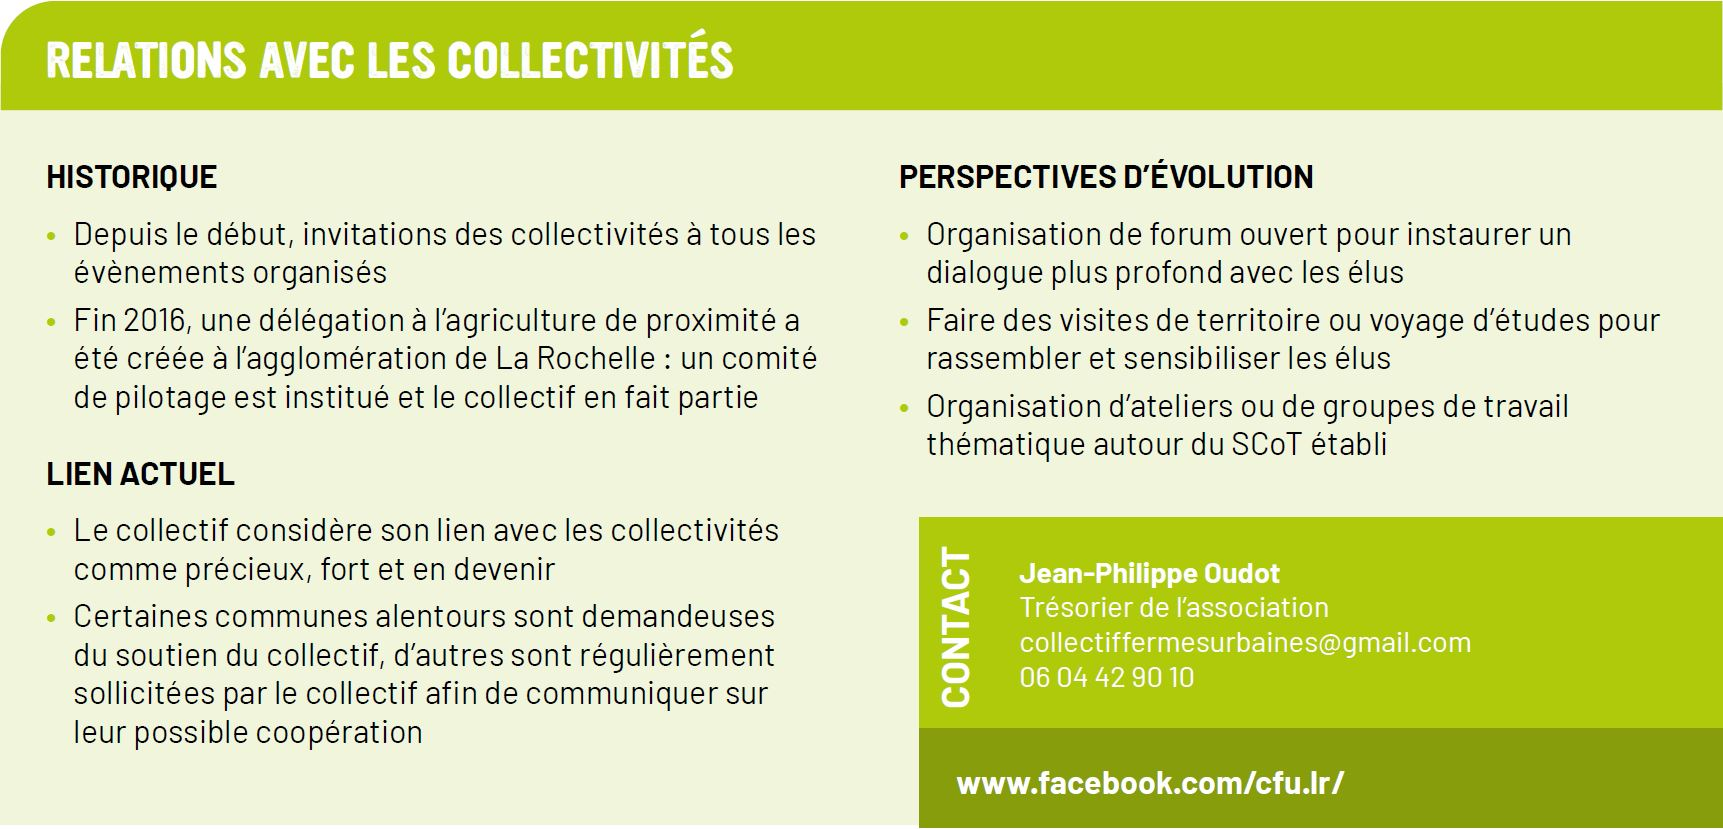 collectif fermes urbaines contact